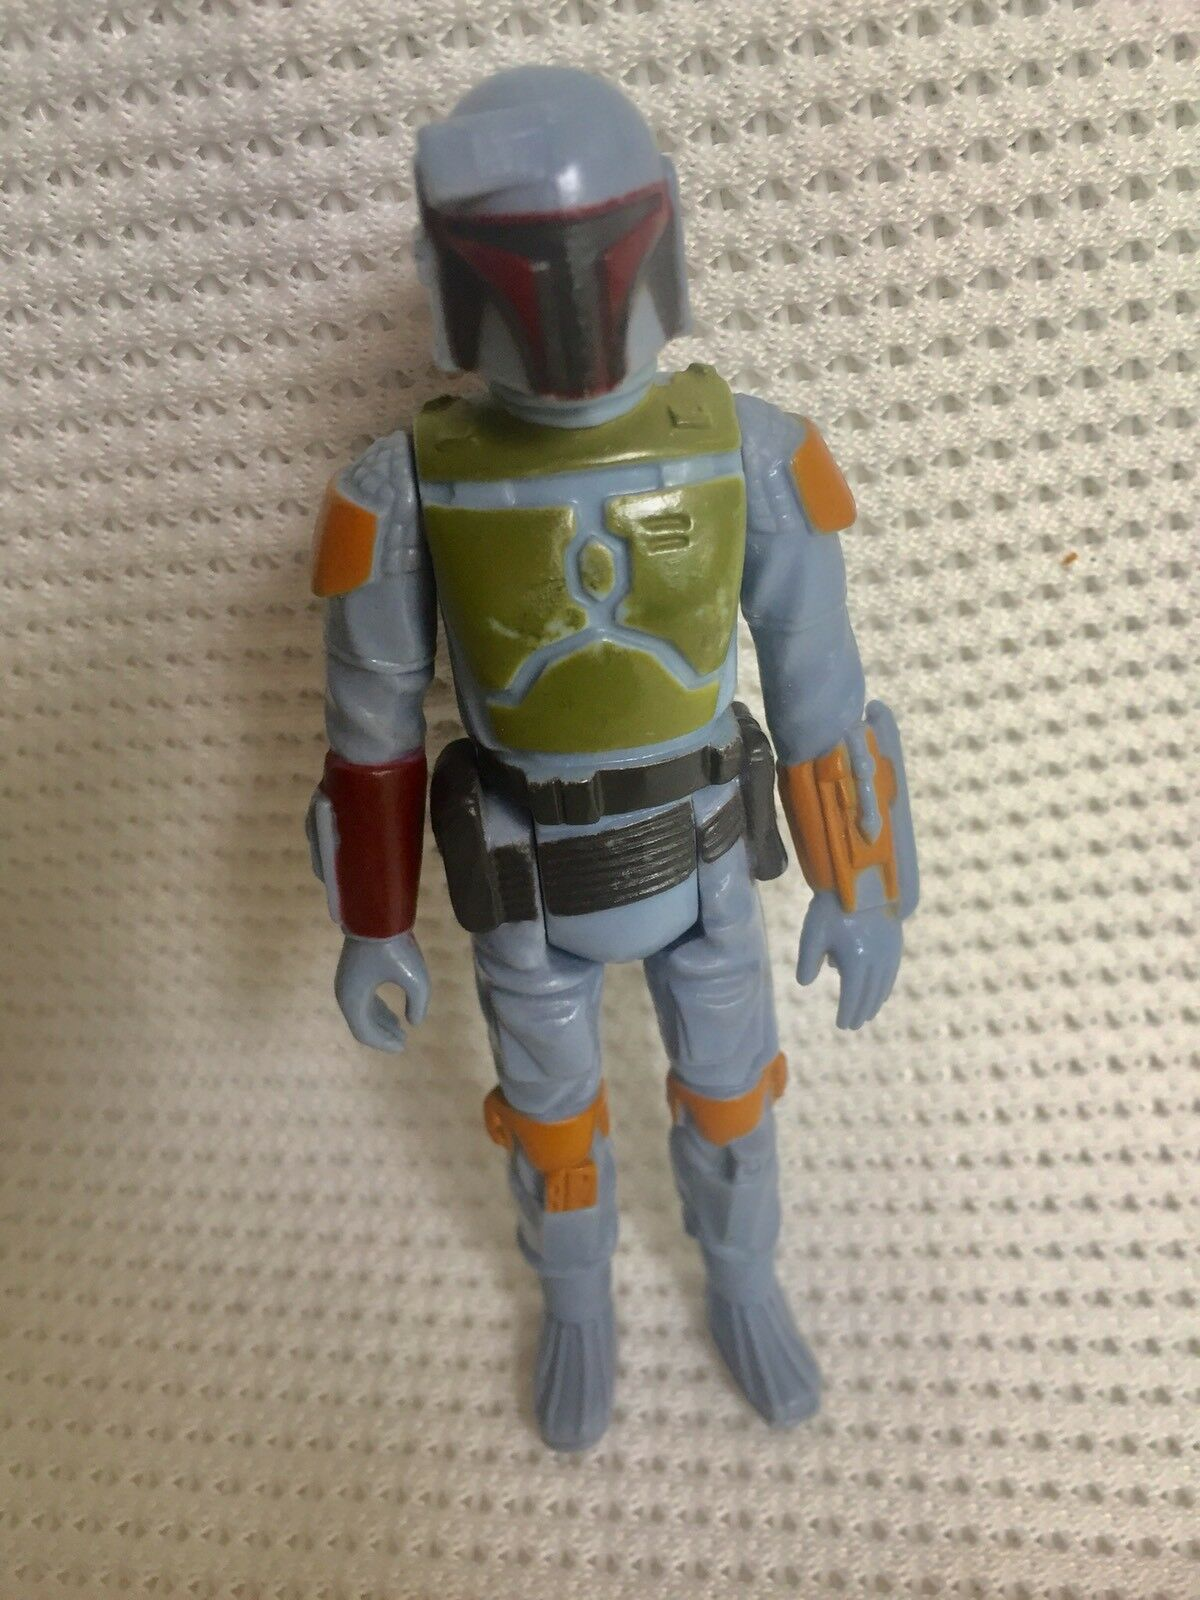 Vintage Star Wars Boba Fett CPG 1979 Taiwan Dark Braun Belt Bounty Hunter